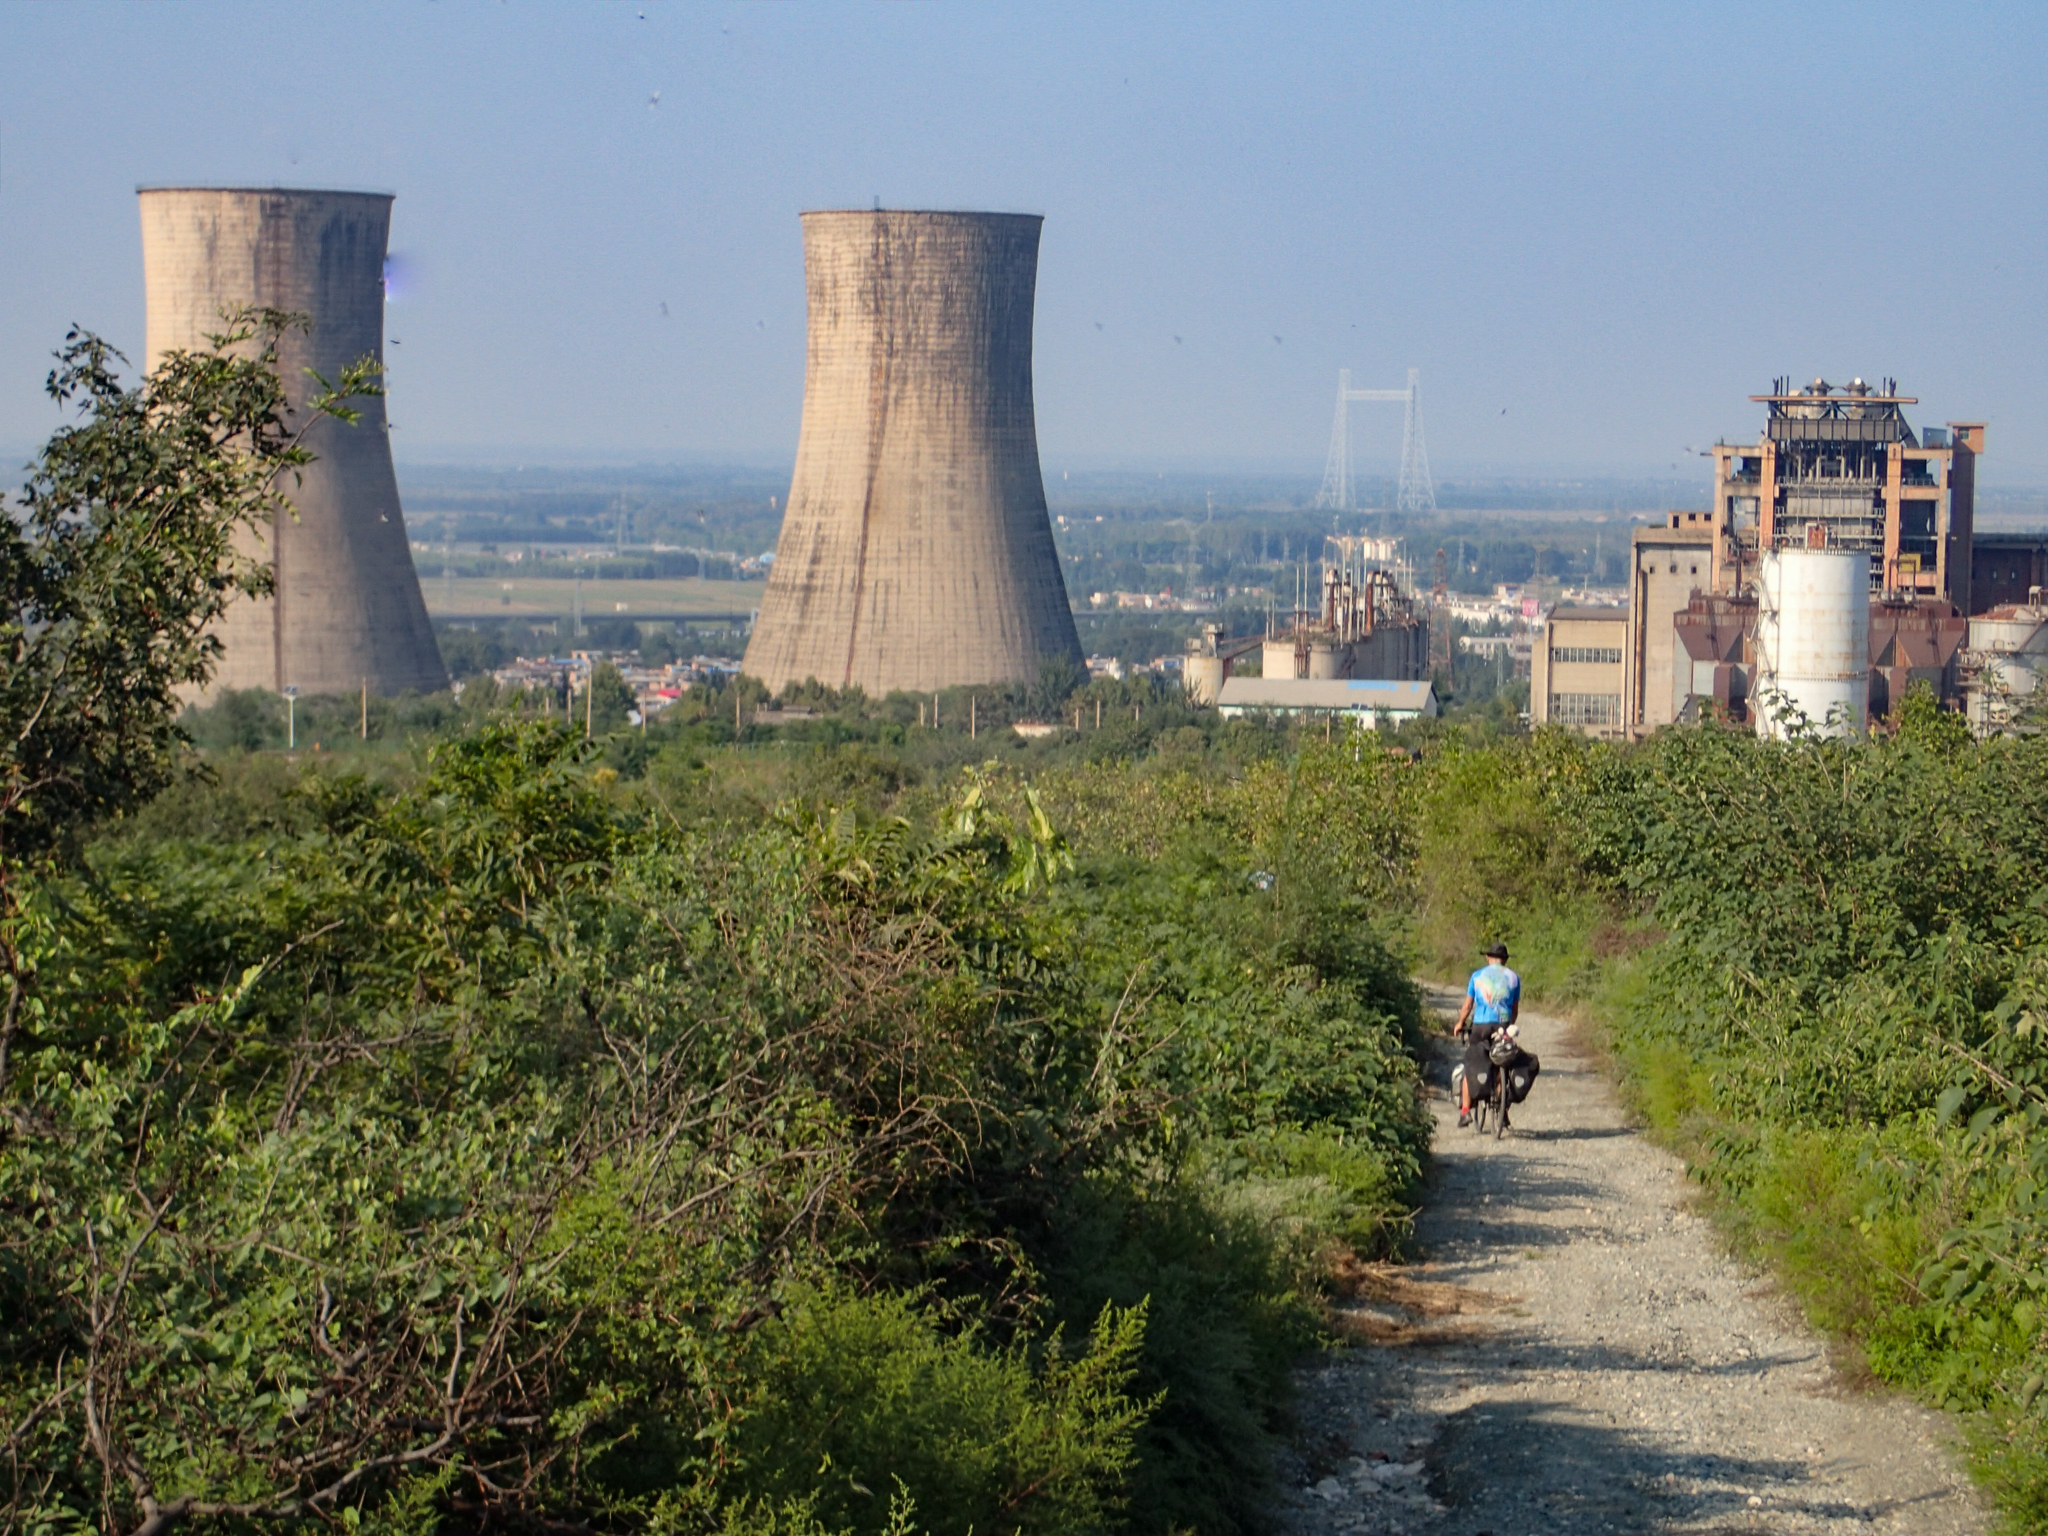 On a track past the Power Station